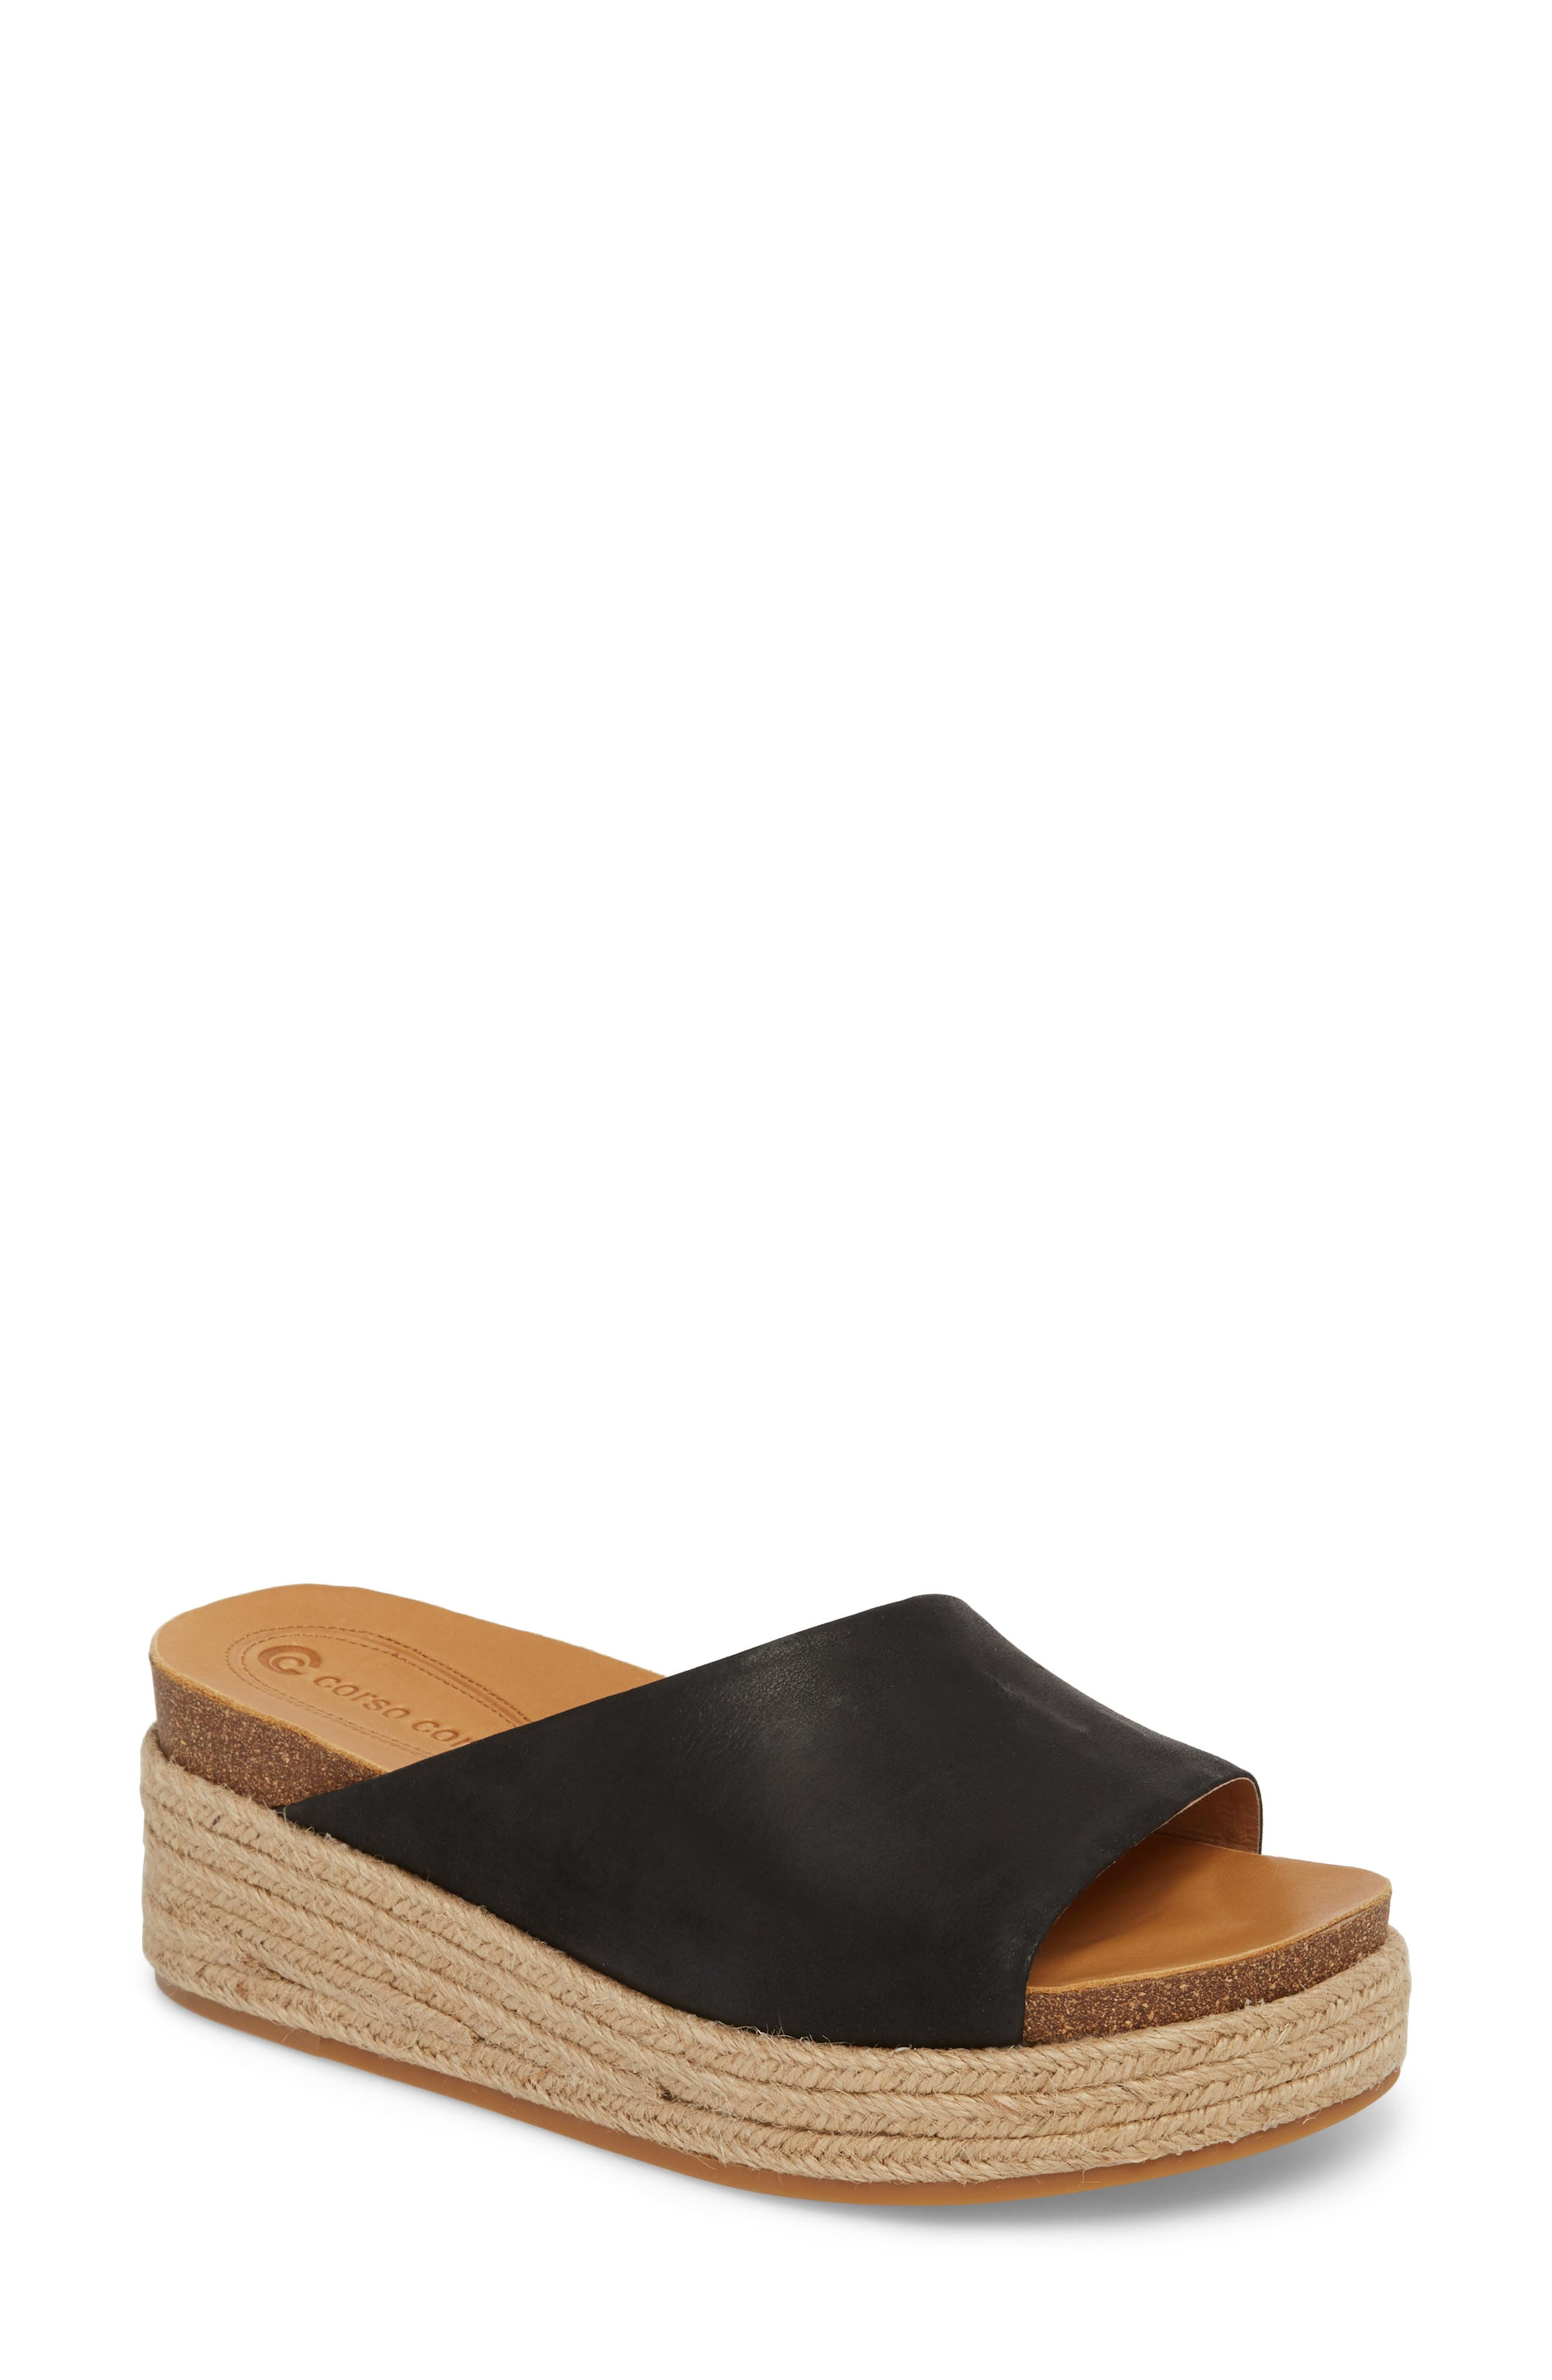 CC CORSO COMO<SUP>®</SUP>, Candice Sandal, Main thumbnail 1, color, BLACK LEATHER